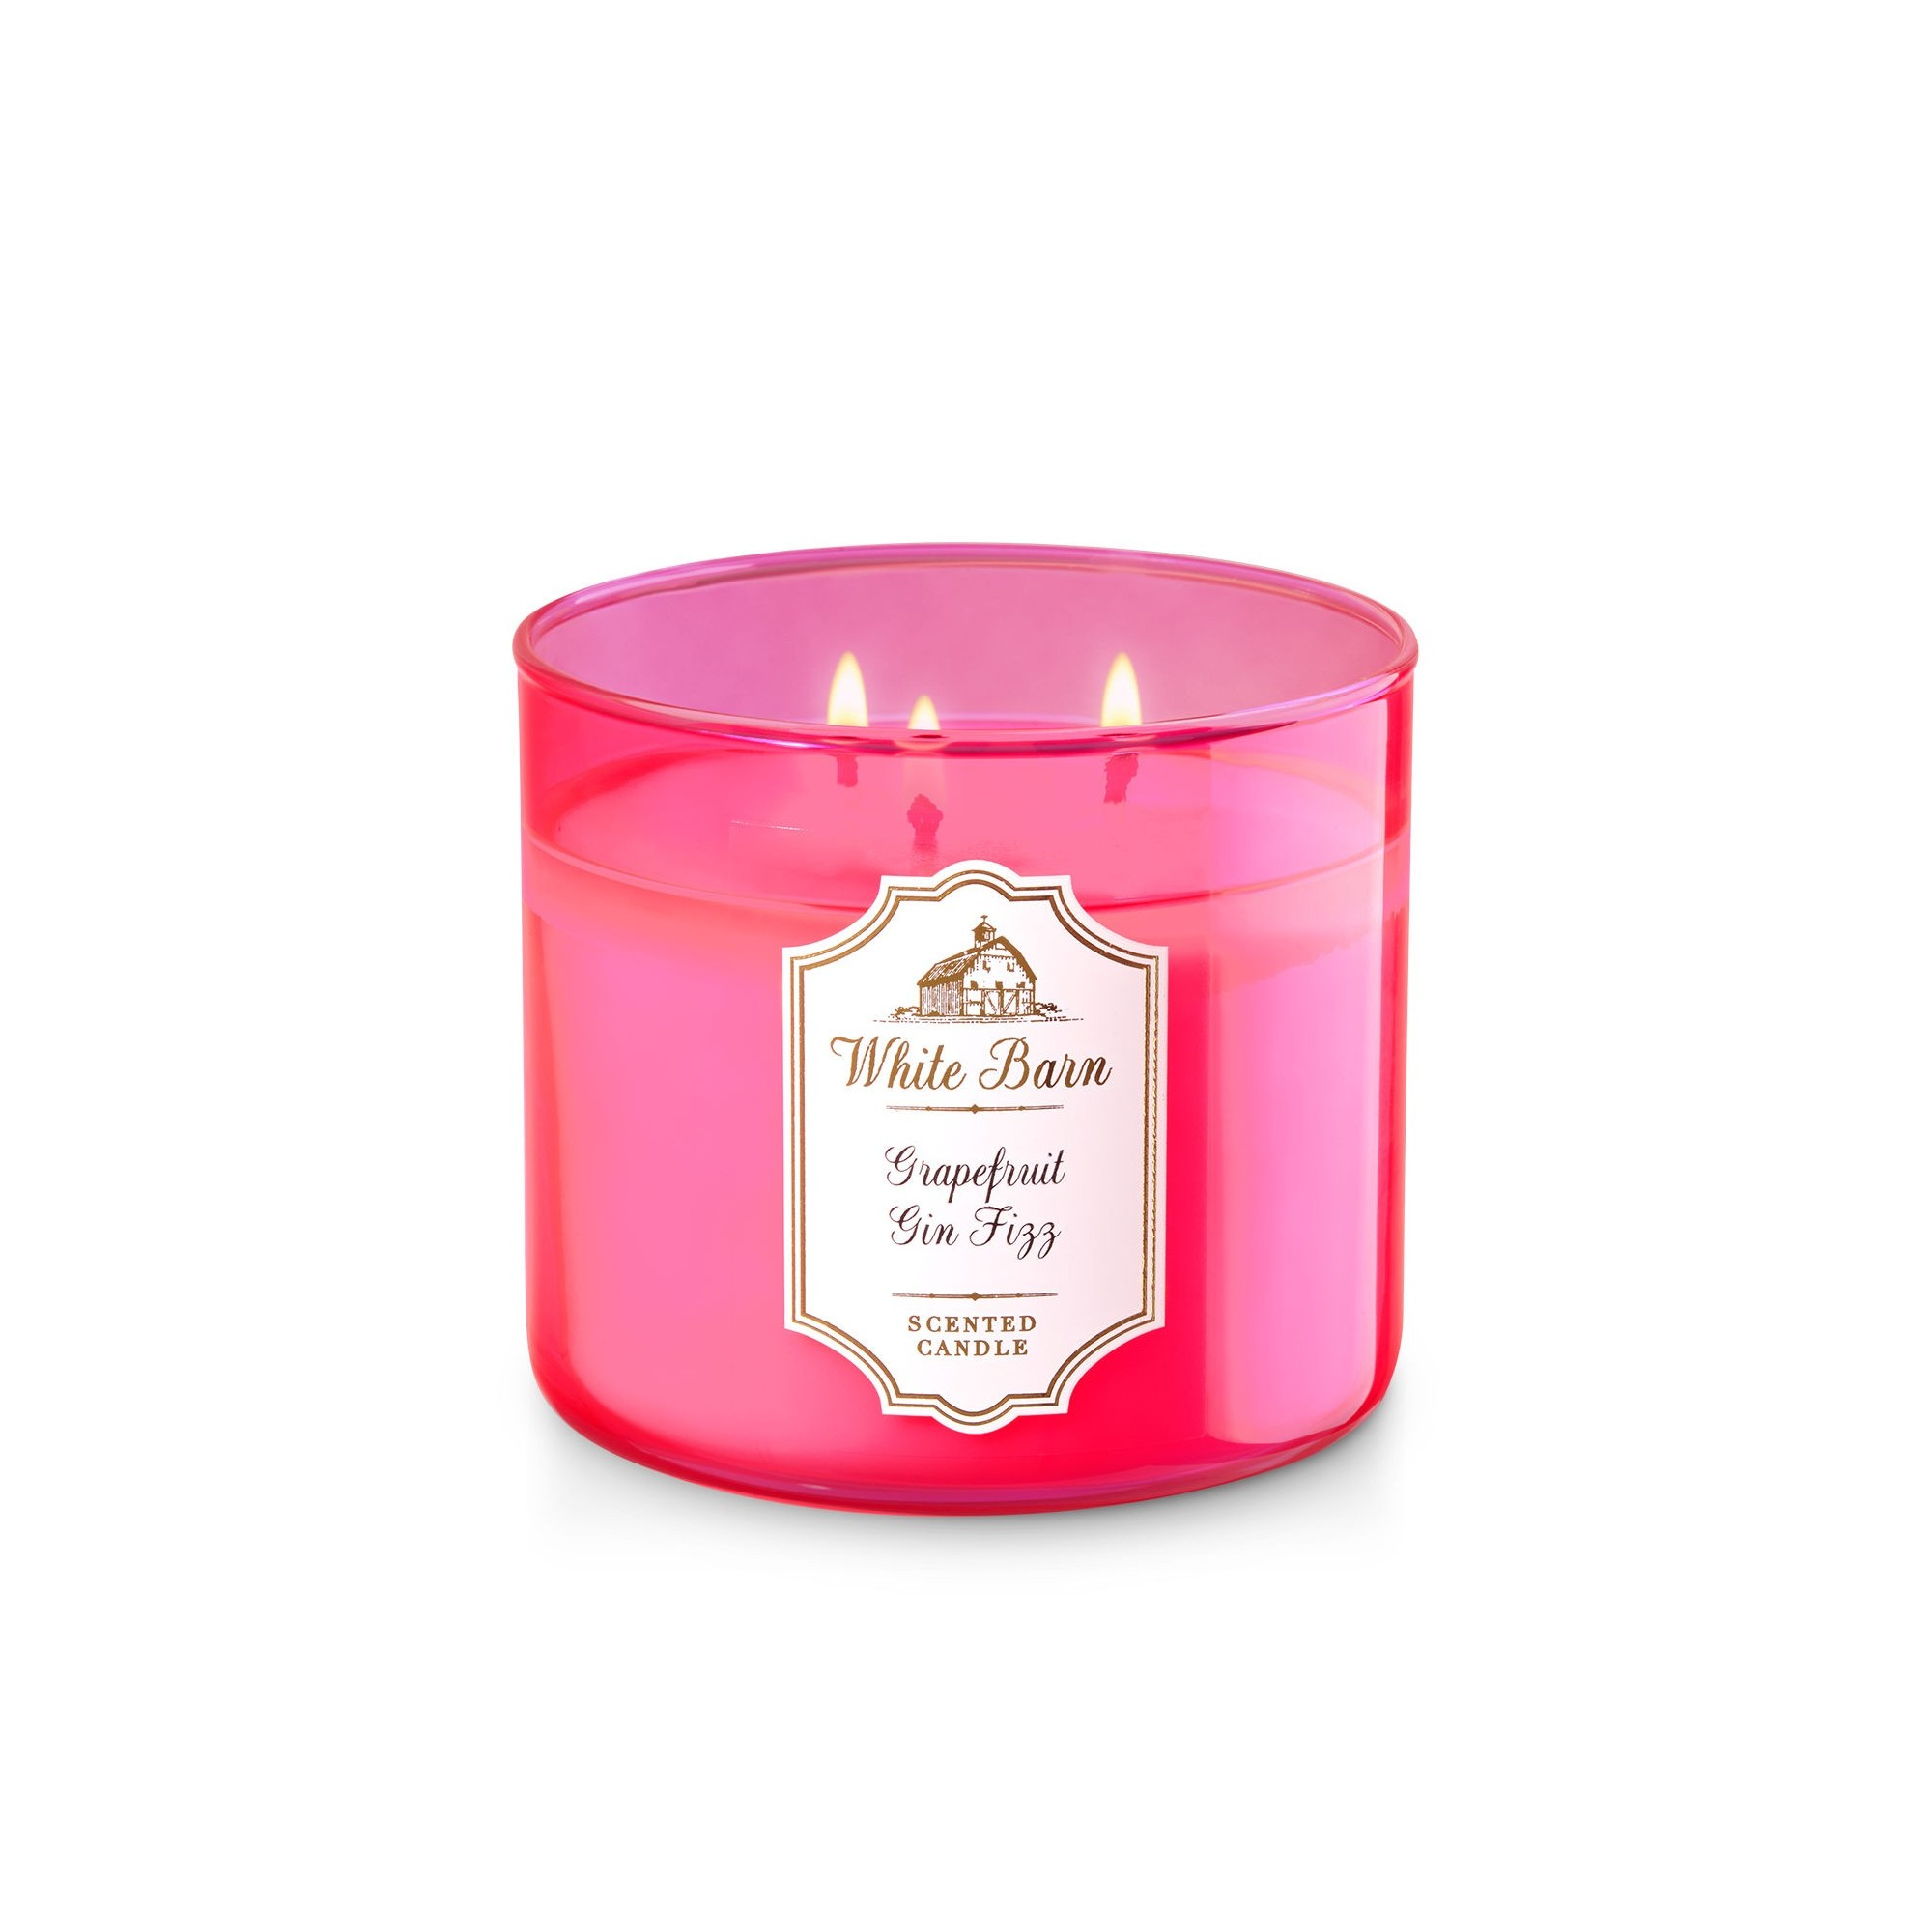 Bath & Body Works White Barn Grapefruit Gin Fizz 3 Wick Scented Candle